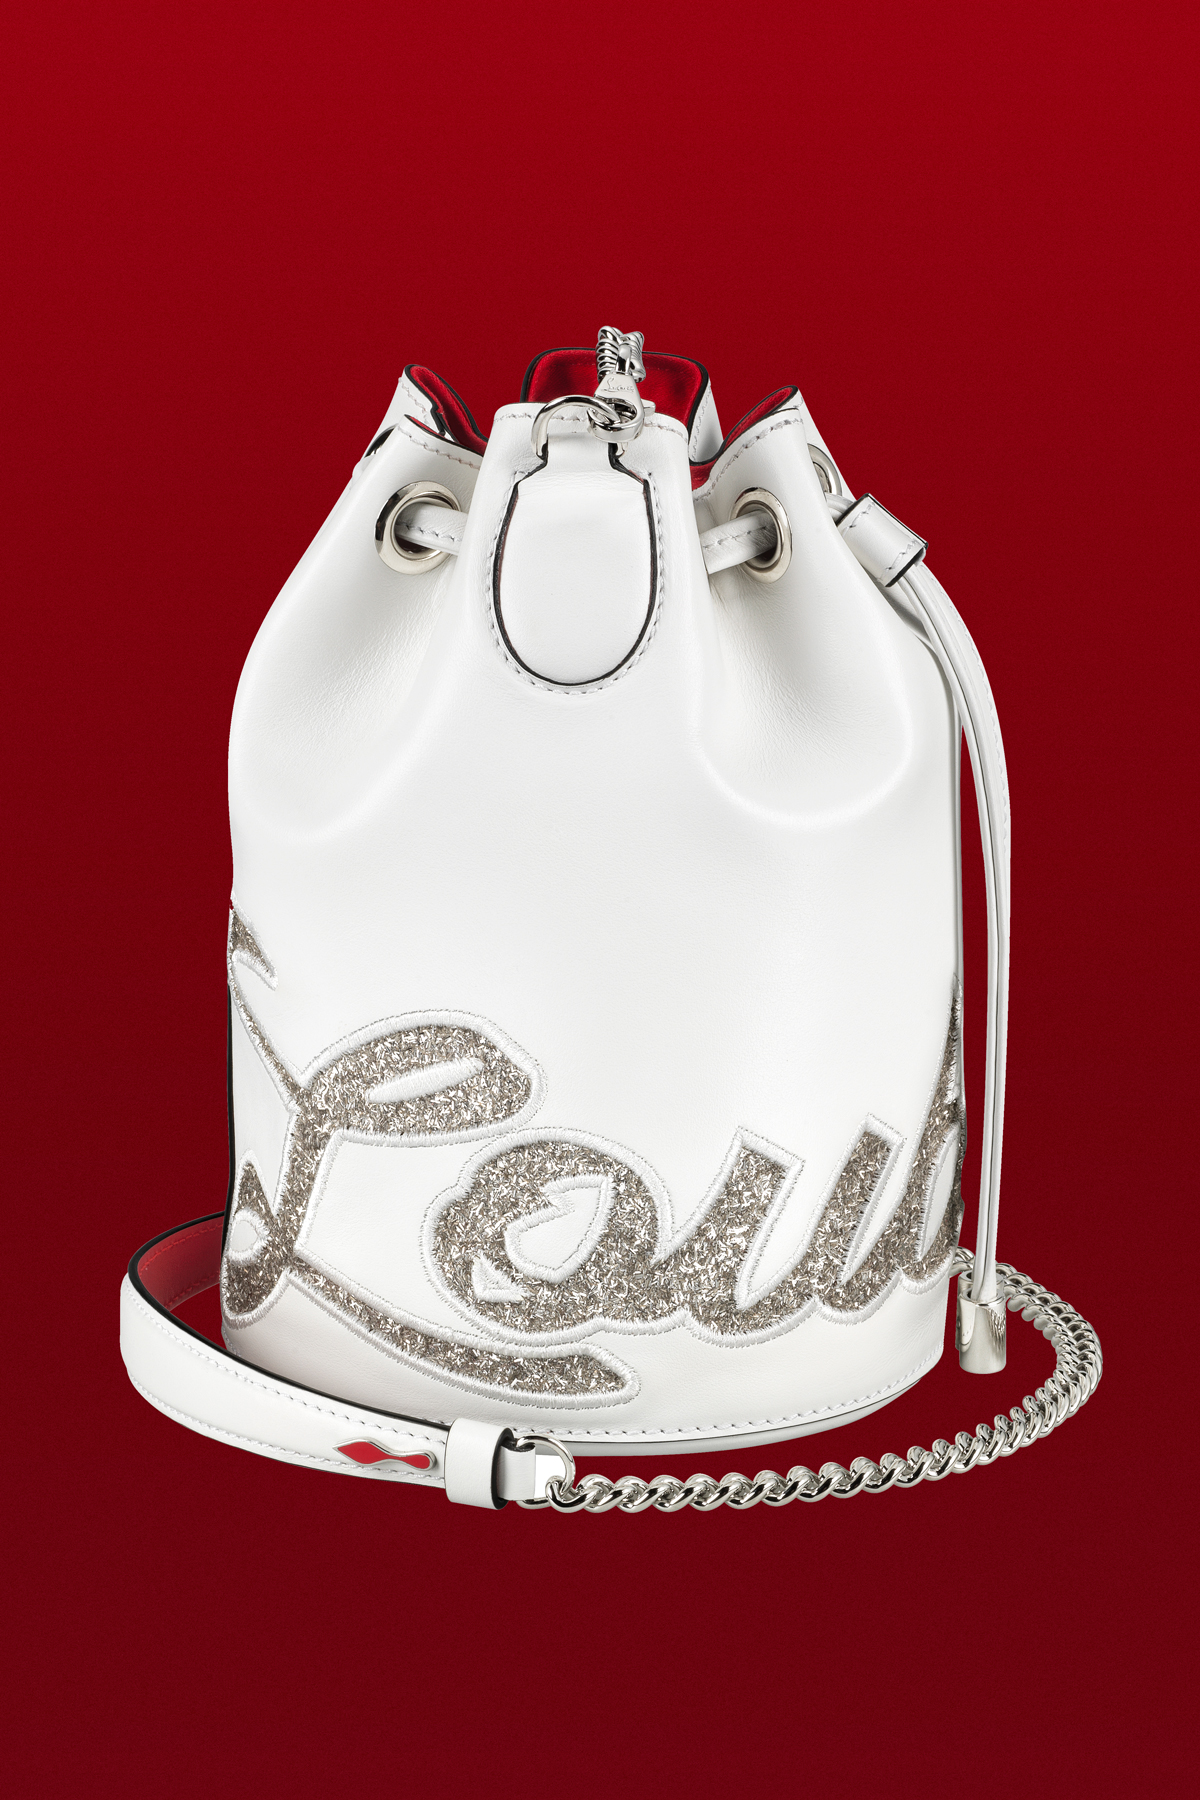 e1c028156d9 Louboutin launches new Marie Jane bucket bags | How To Spend It